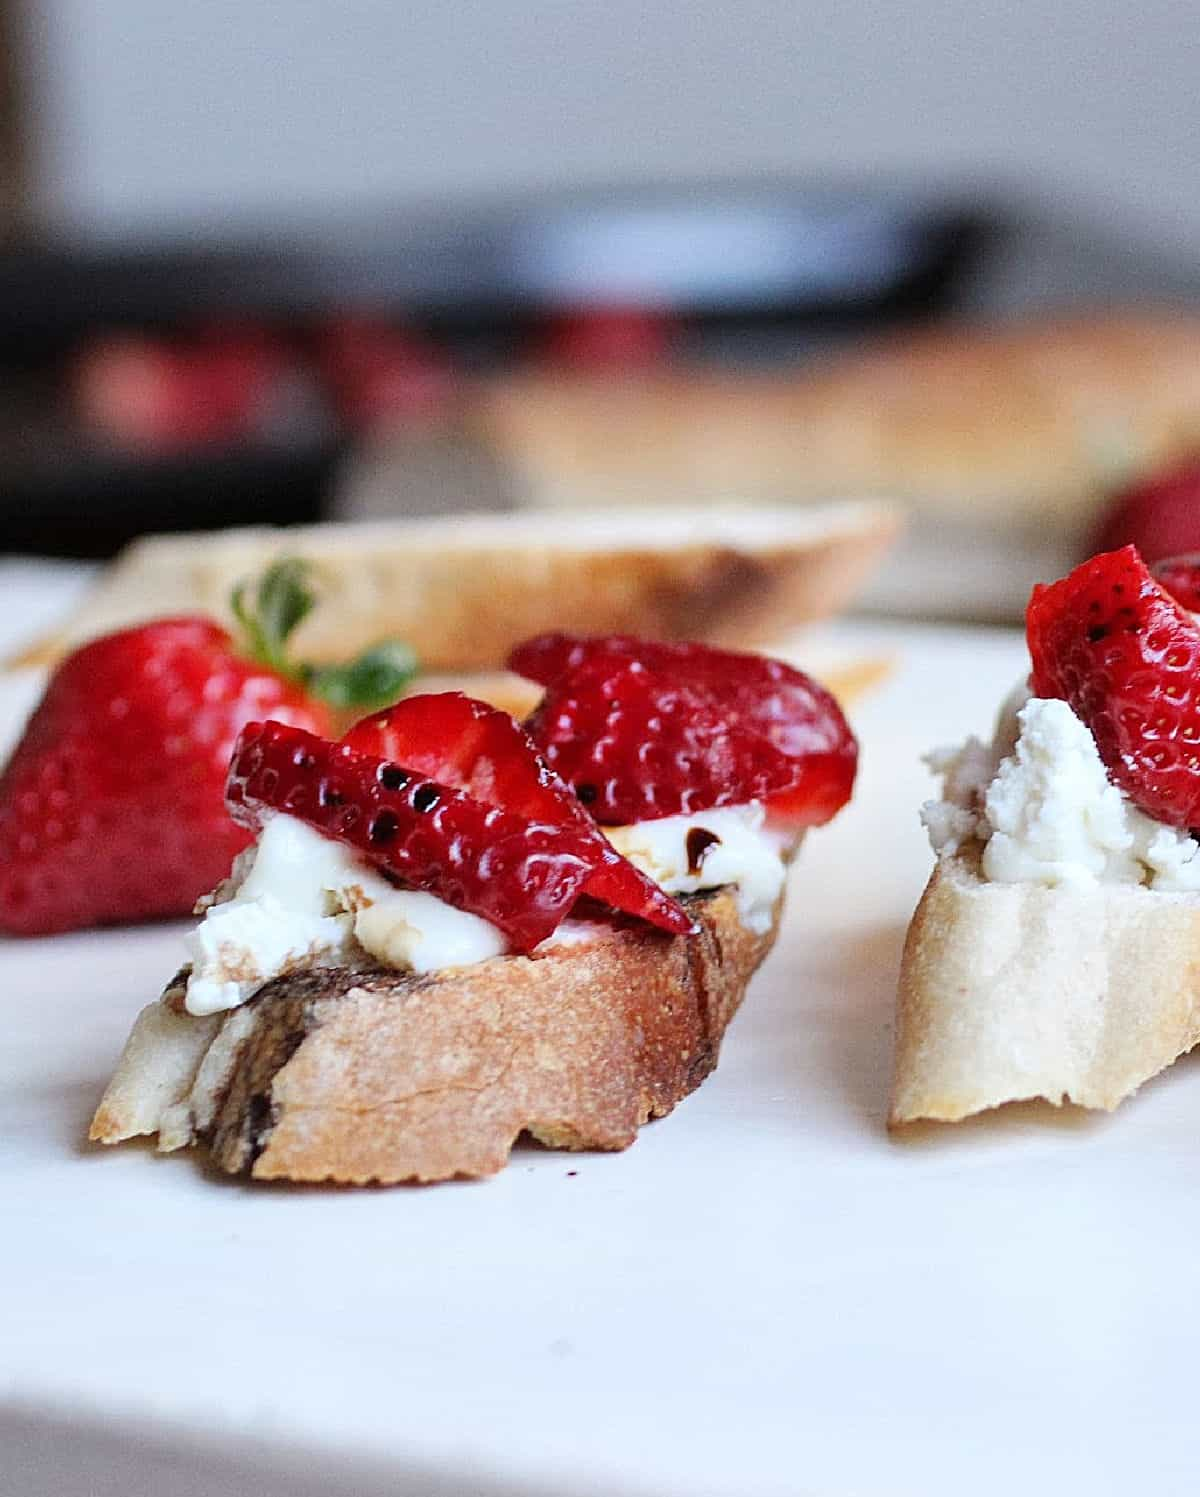 Slices of bread with cheese and strawberries on white table